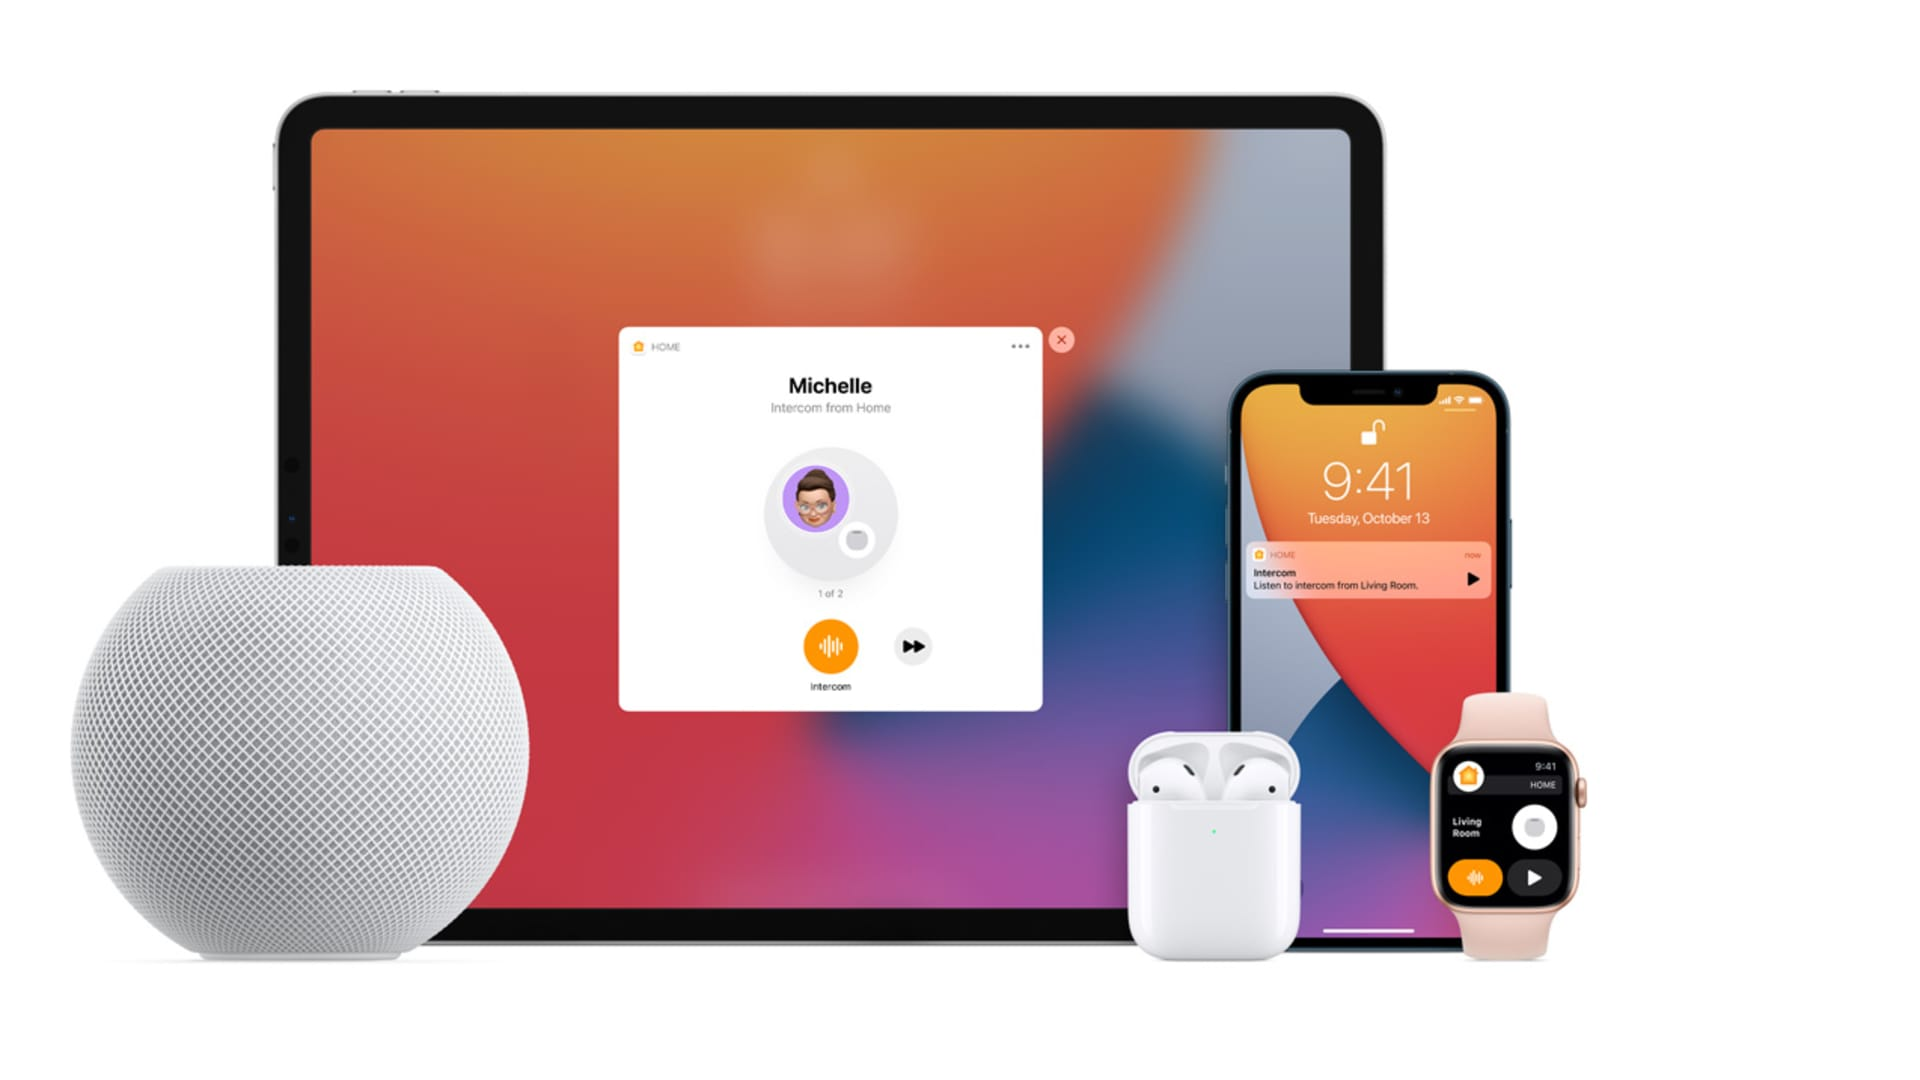 The HomePod Mini can act as an intercom and send a message to all of your Apple devices.